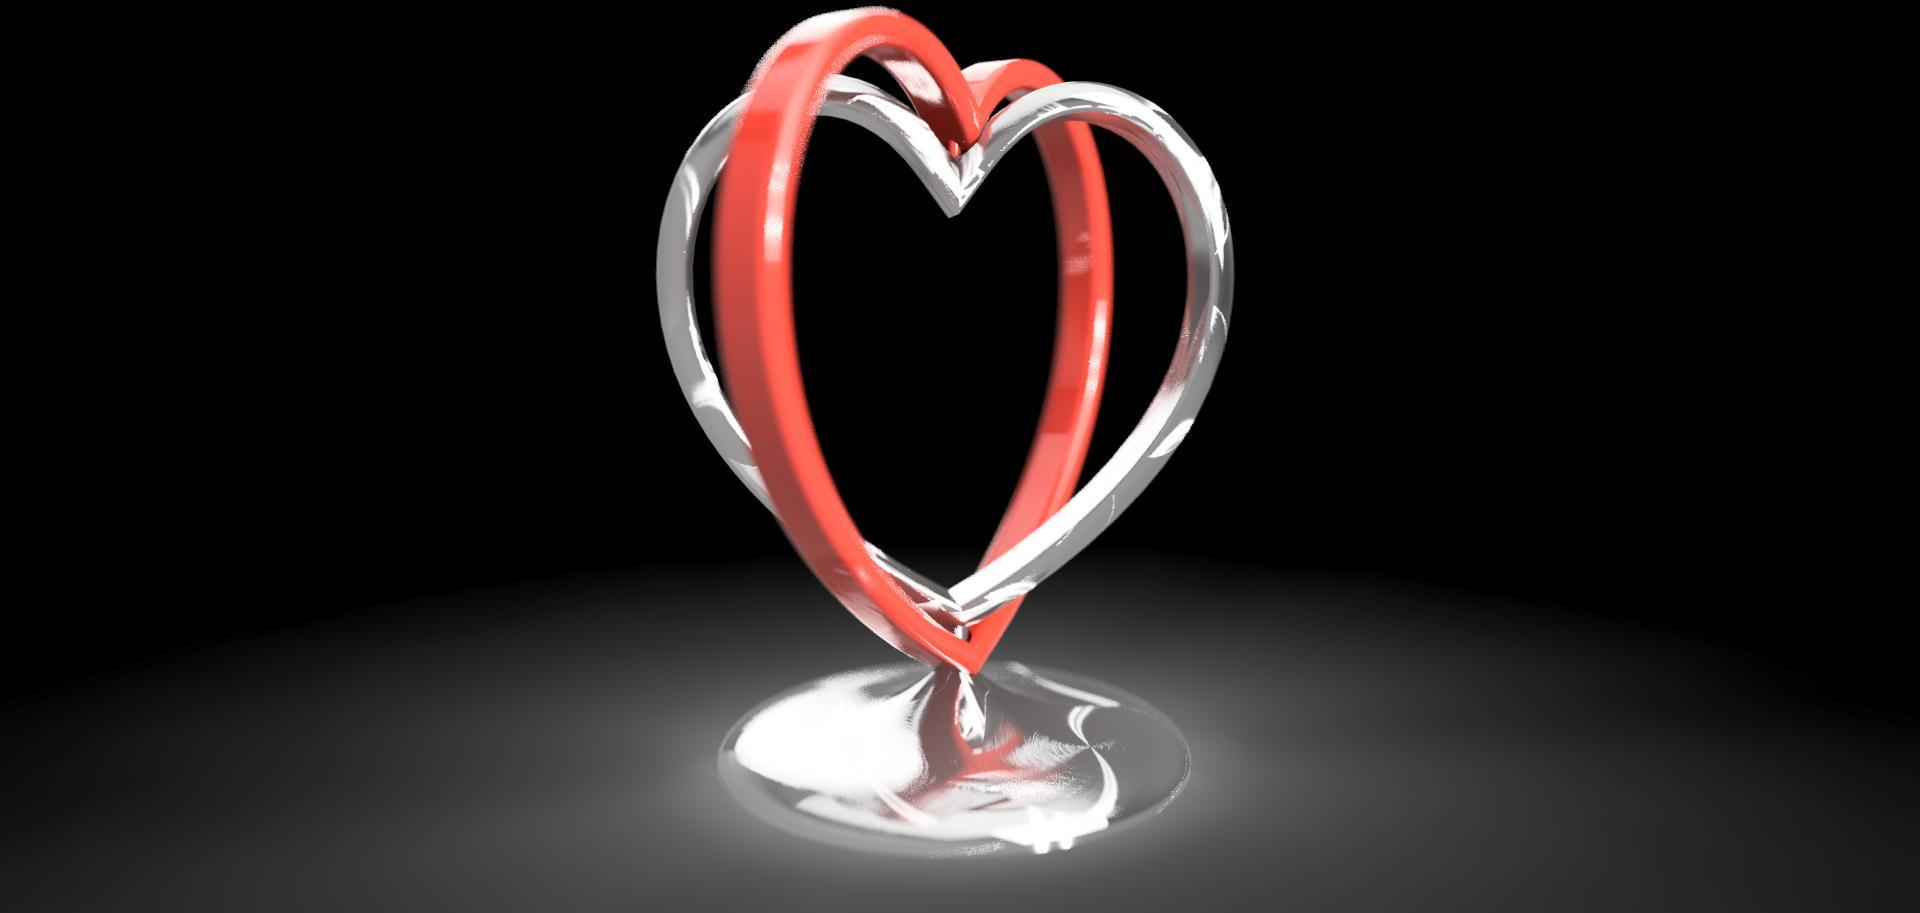 Heart_photo_frame